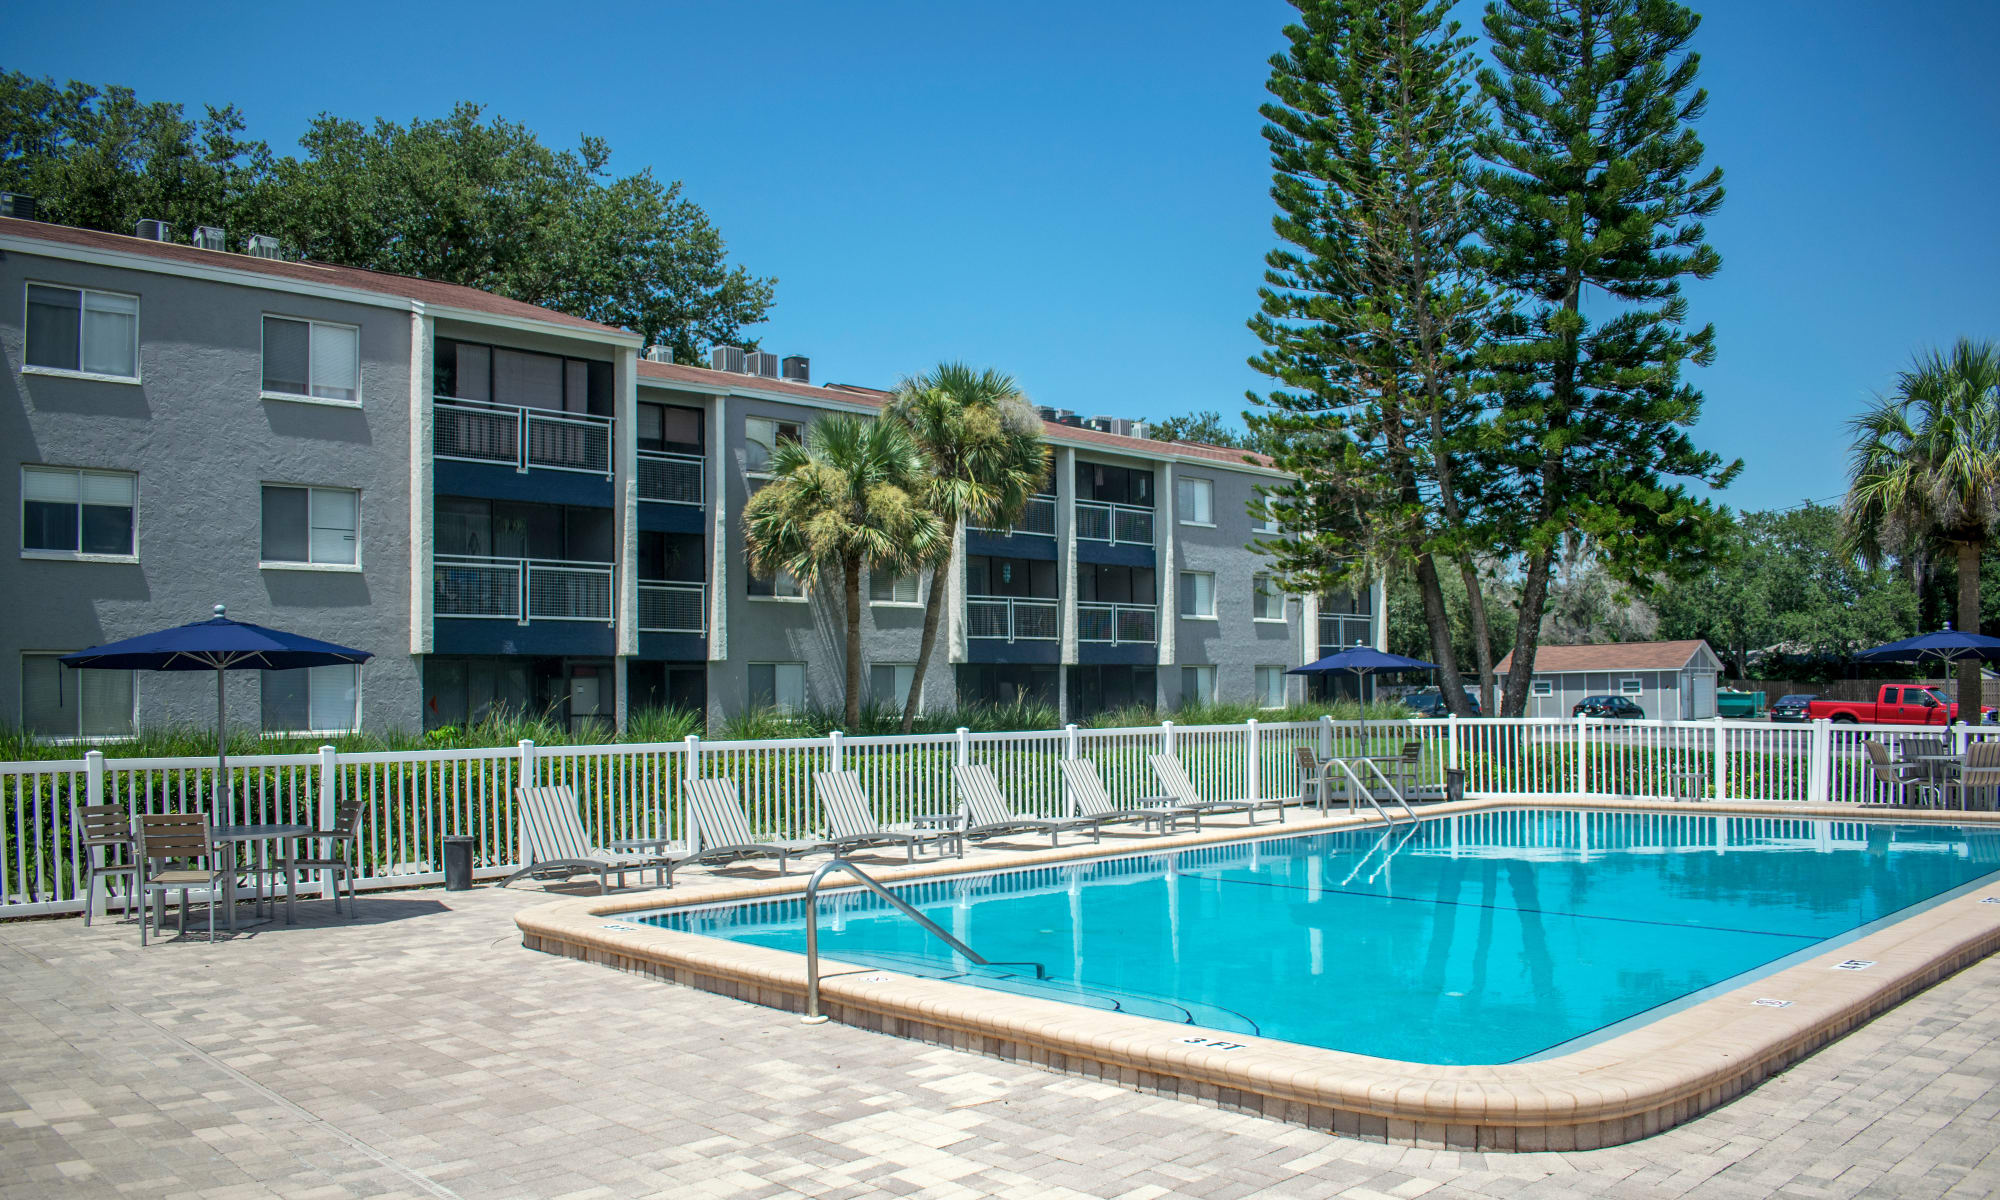 Sparkling swimming pool at Promenade at Edgewater in Dunedin, Florida